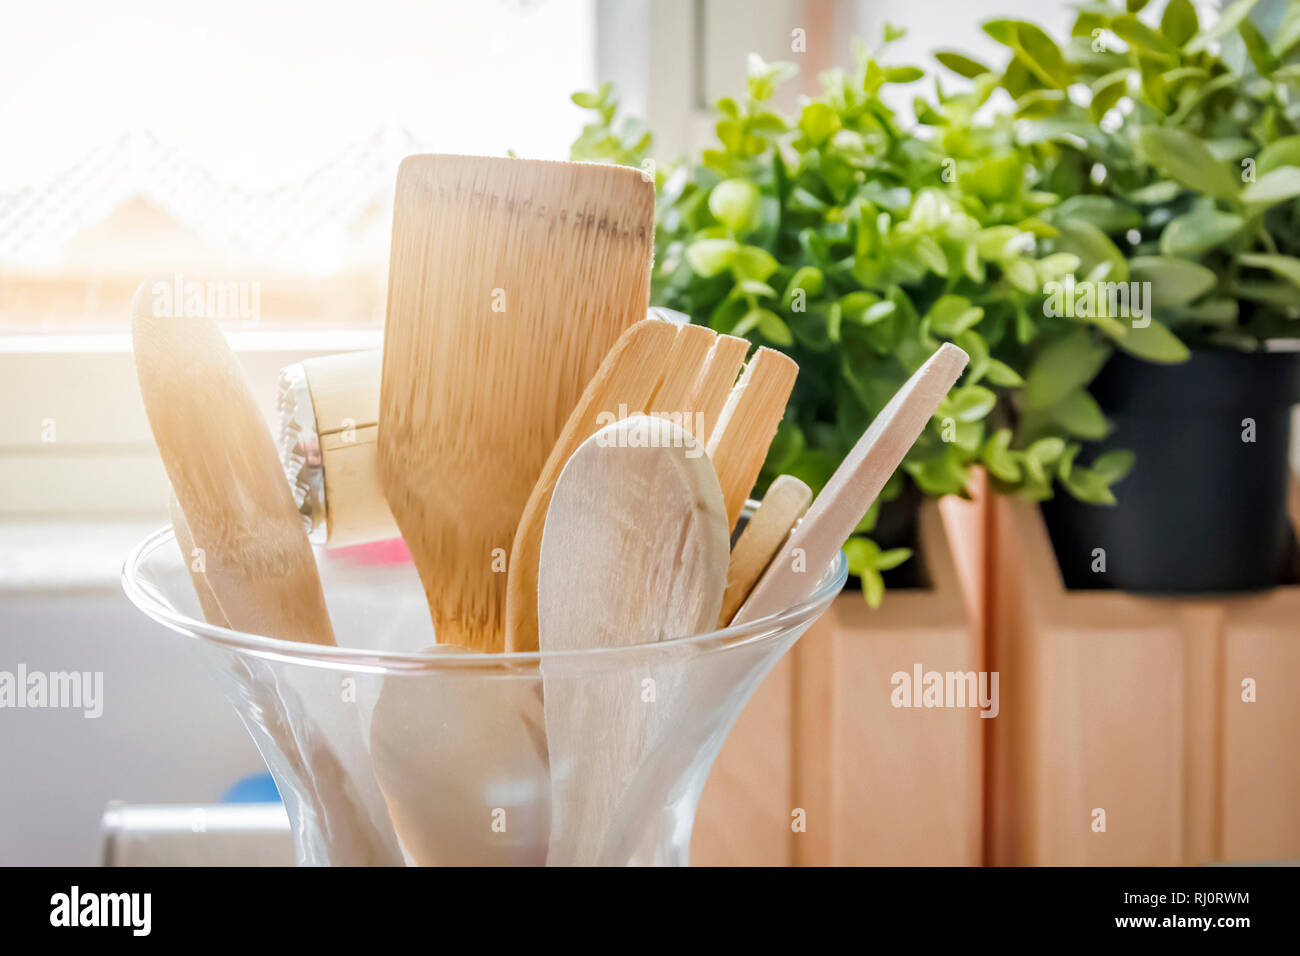 Wooden kitchen utensils in a glass container with a grass in the background. Kitchen interior shot. Home decor and cooking concept Stock Photo